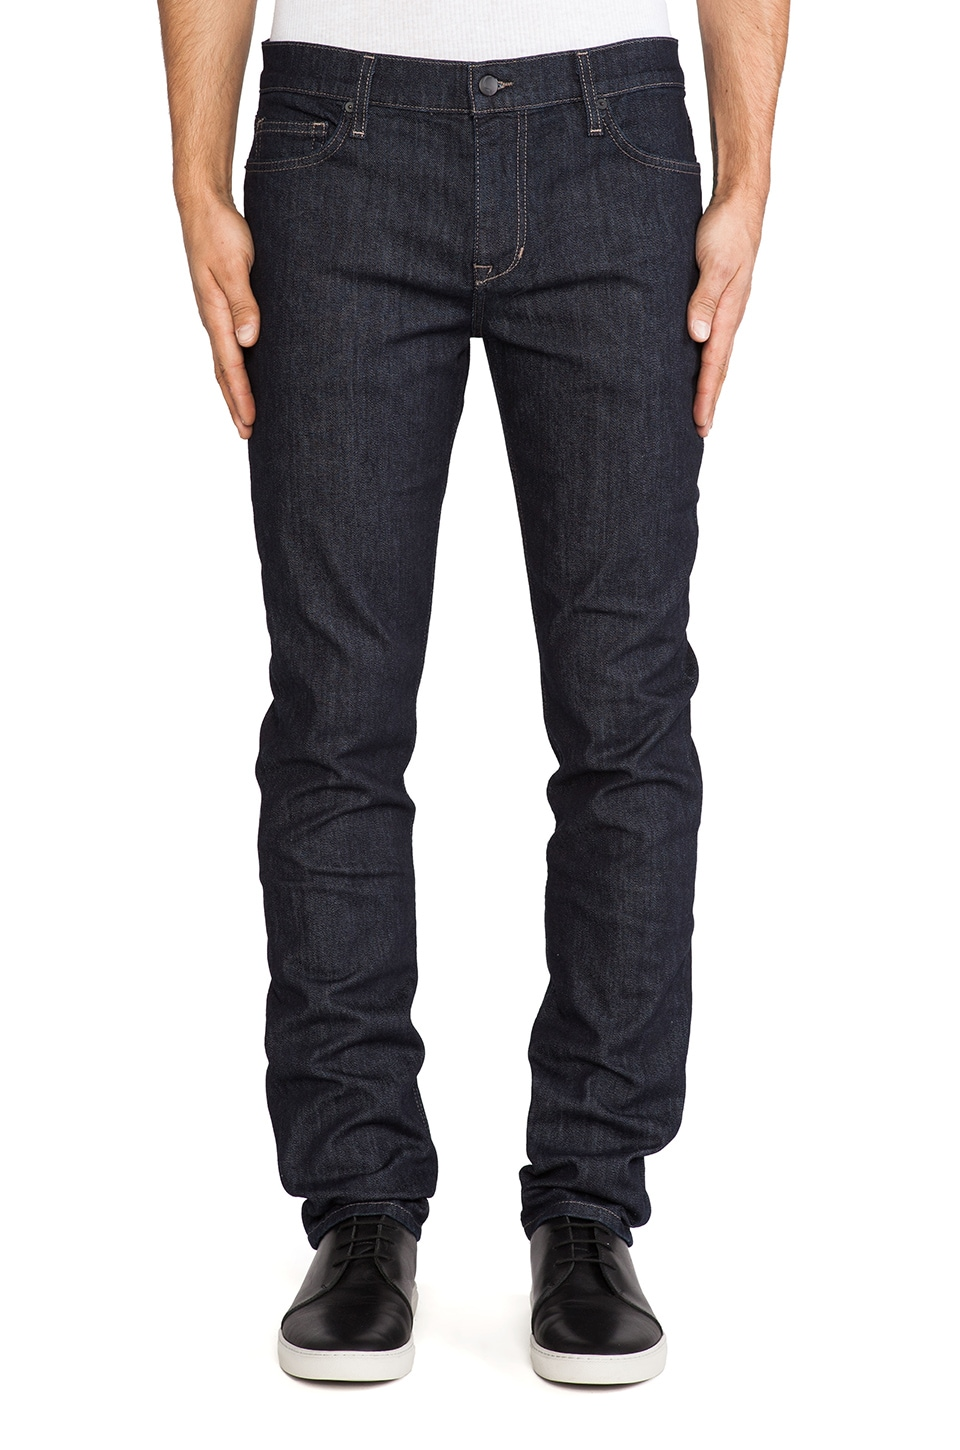 Joe's Jeans Slim Fit in Palamar